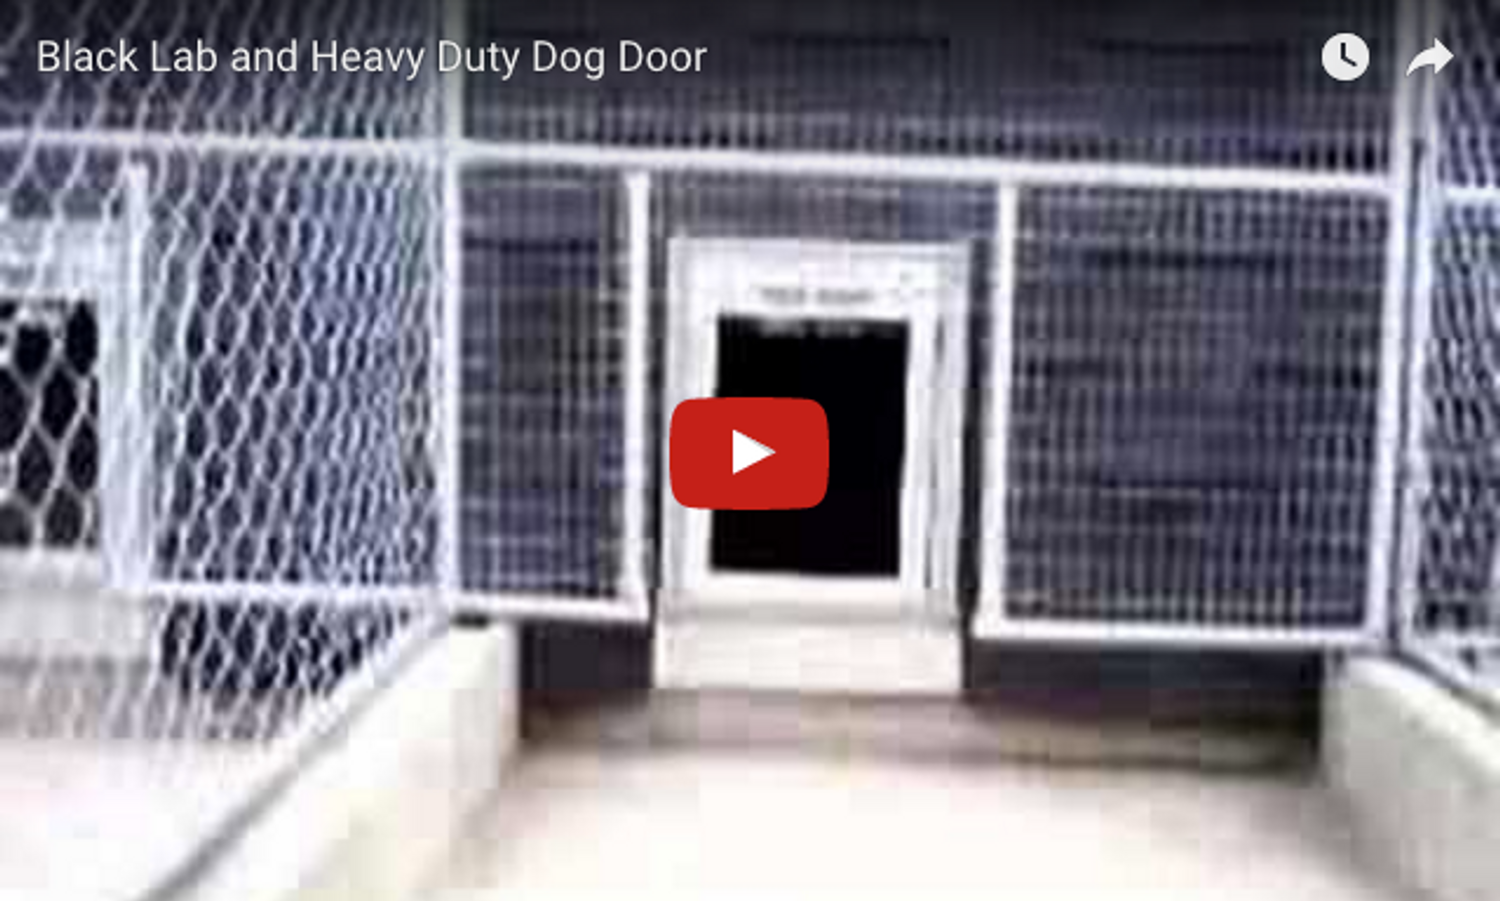 VIDEO: Heavy Duty Dog Door in Action!